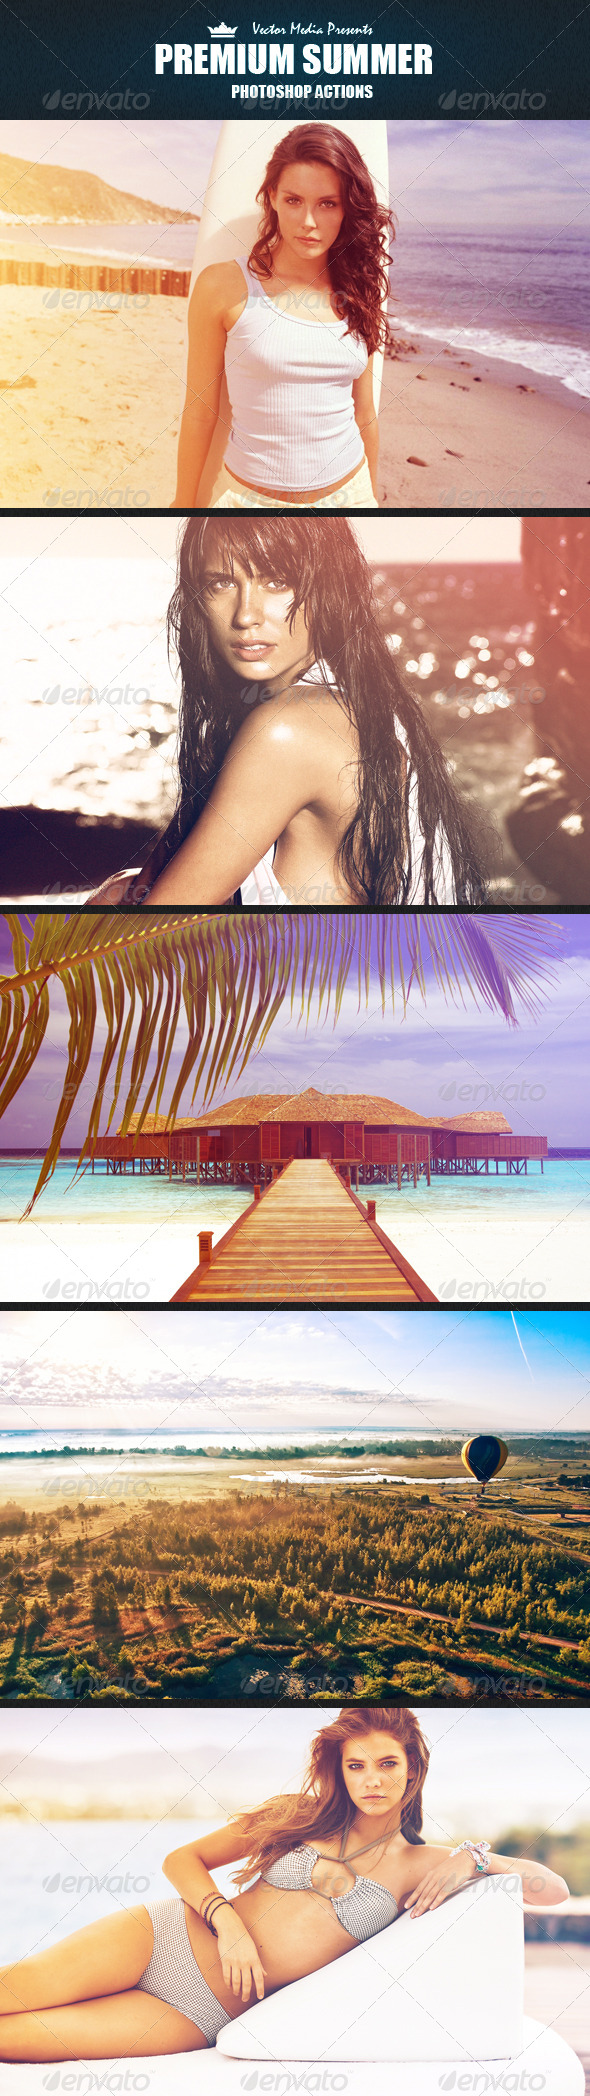 GraphicRiver Premium Summer Photoshop Actions 4956149